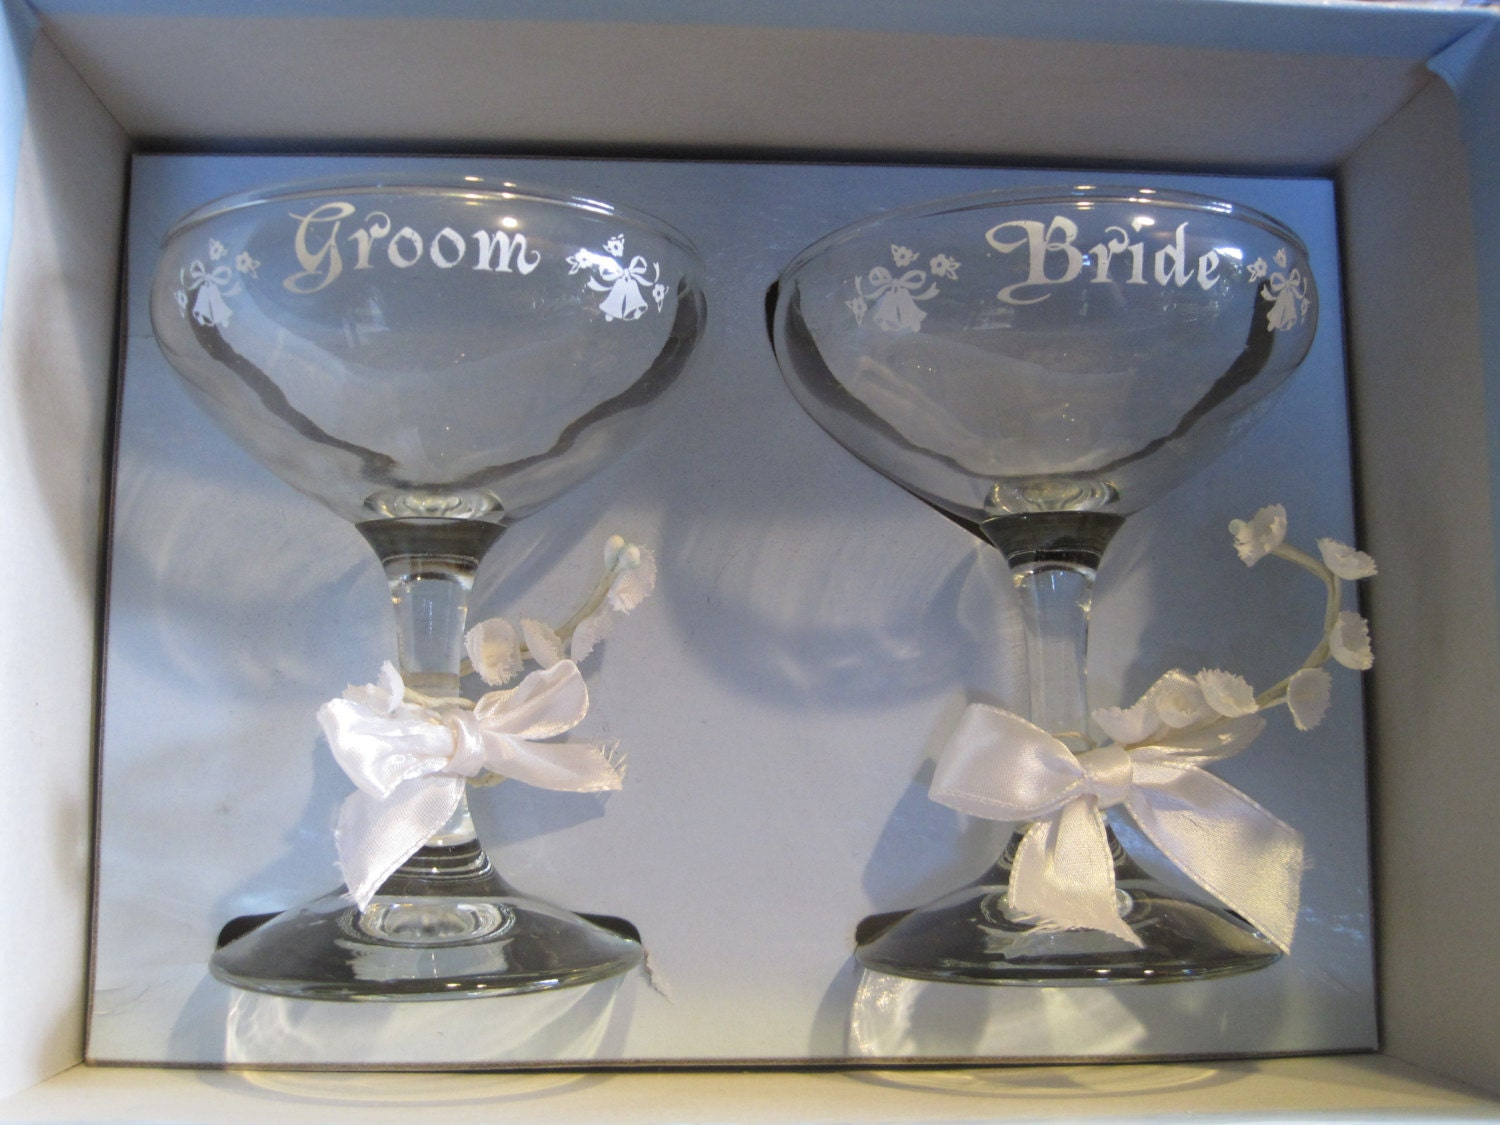 Toast the Bride and Groom Vintage Embossed Goblets